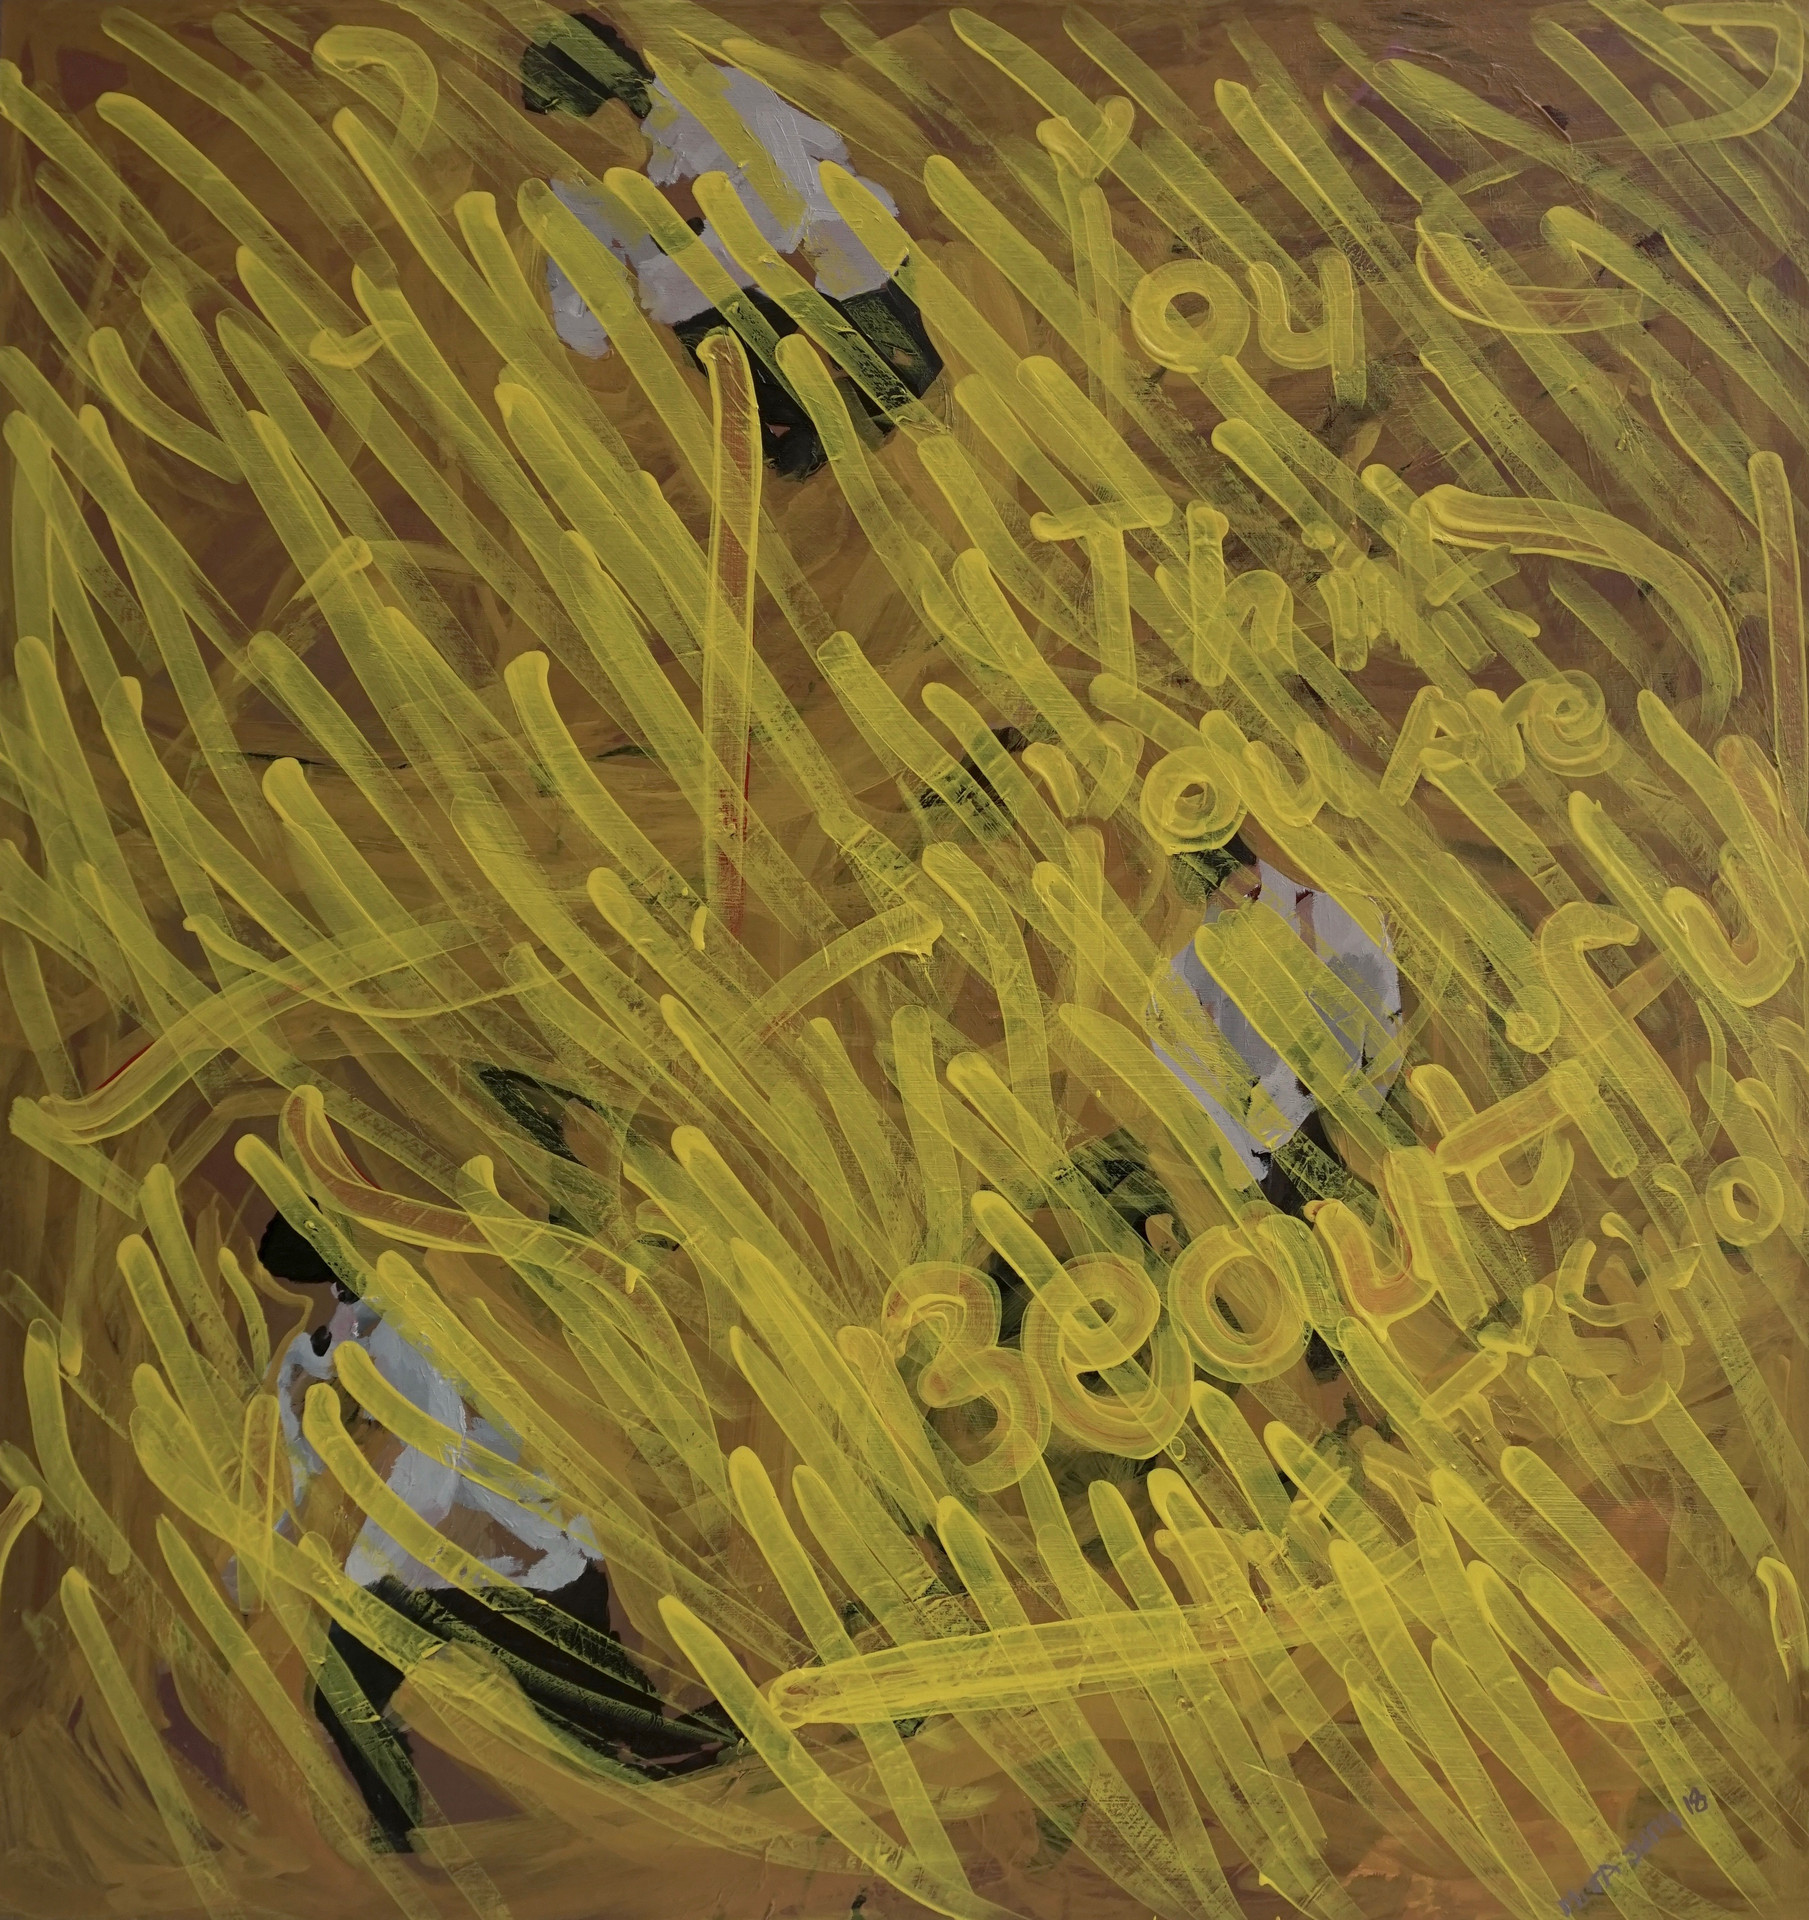 Yellow Rain,34x36inches, oil and acrylic on canvas, 2018